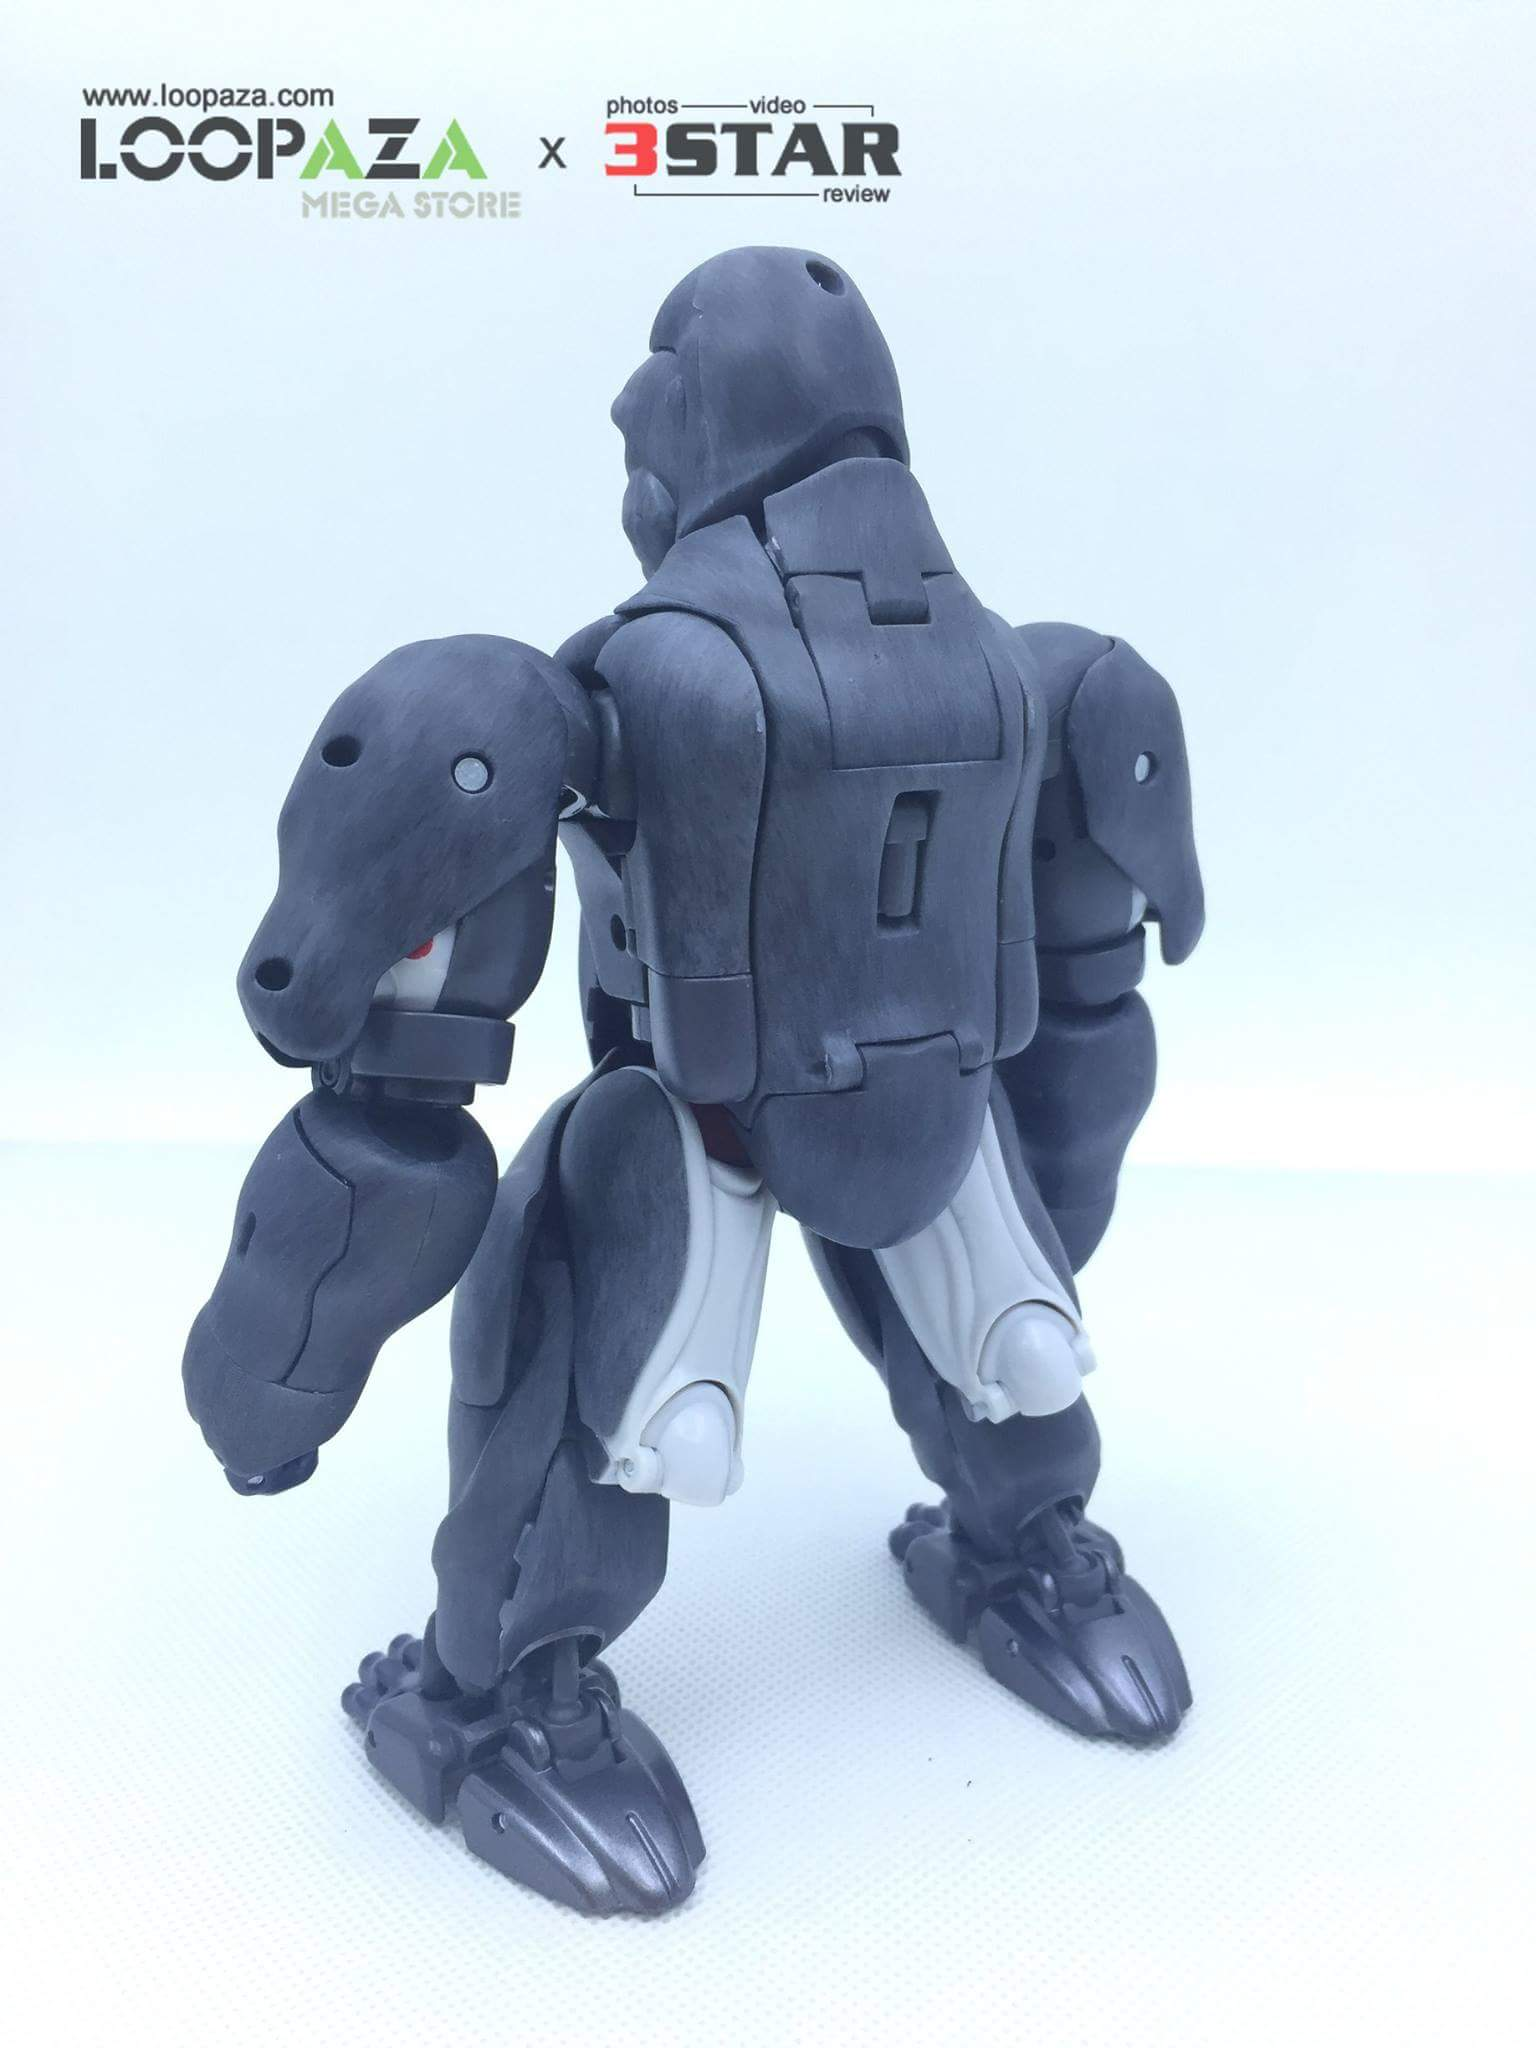 [Masterpiece] MP-32, MP-38 Optimus Primal et MP-38+ Burning Convoy (Beast Wars) - Page 3 3iyOHaeL